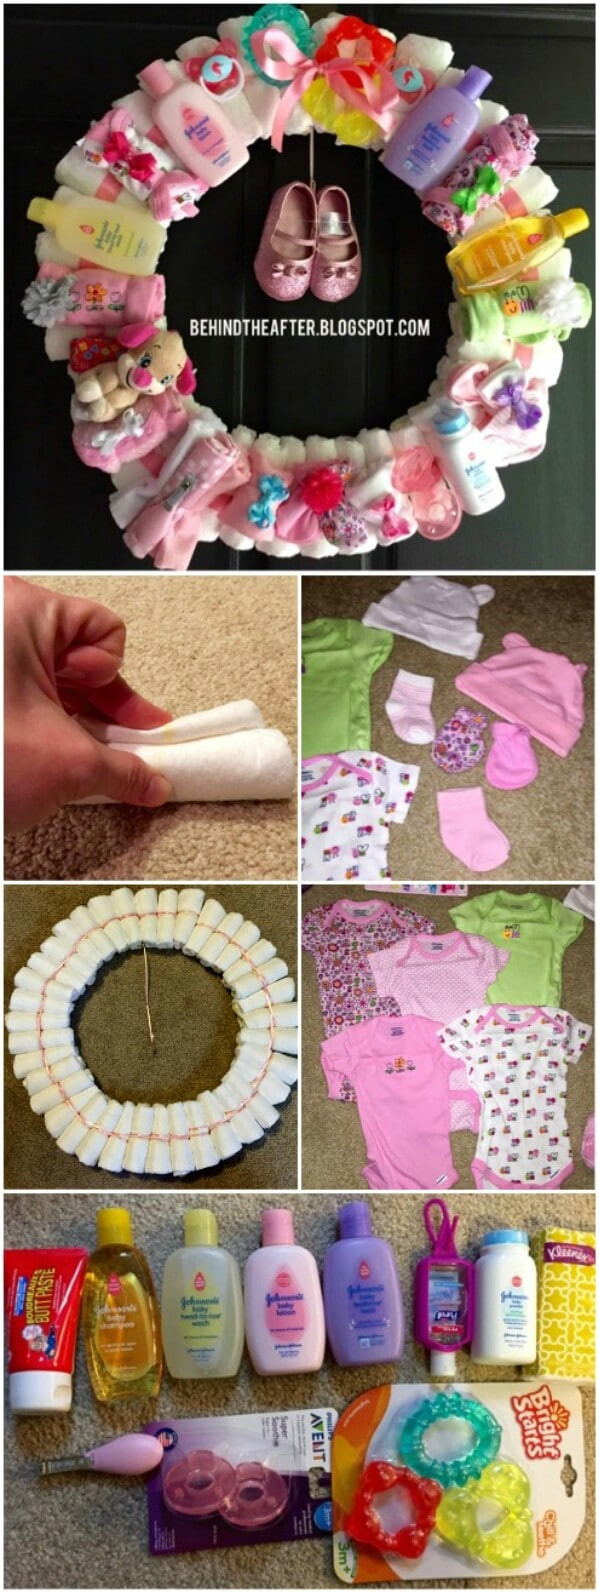 Best ideas about Homemade Baby Gift Ideas . Save or Pin 25 Enchantingly Adorable Baby Shower Gift Ideas That Will Now.